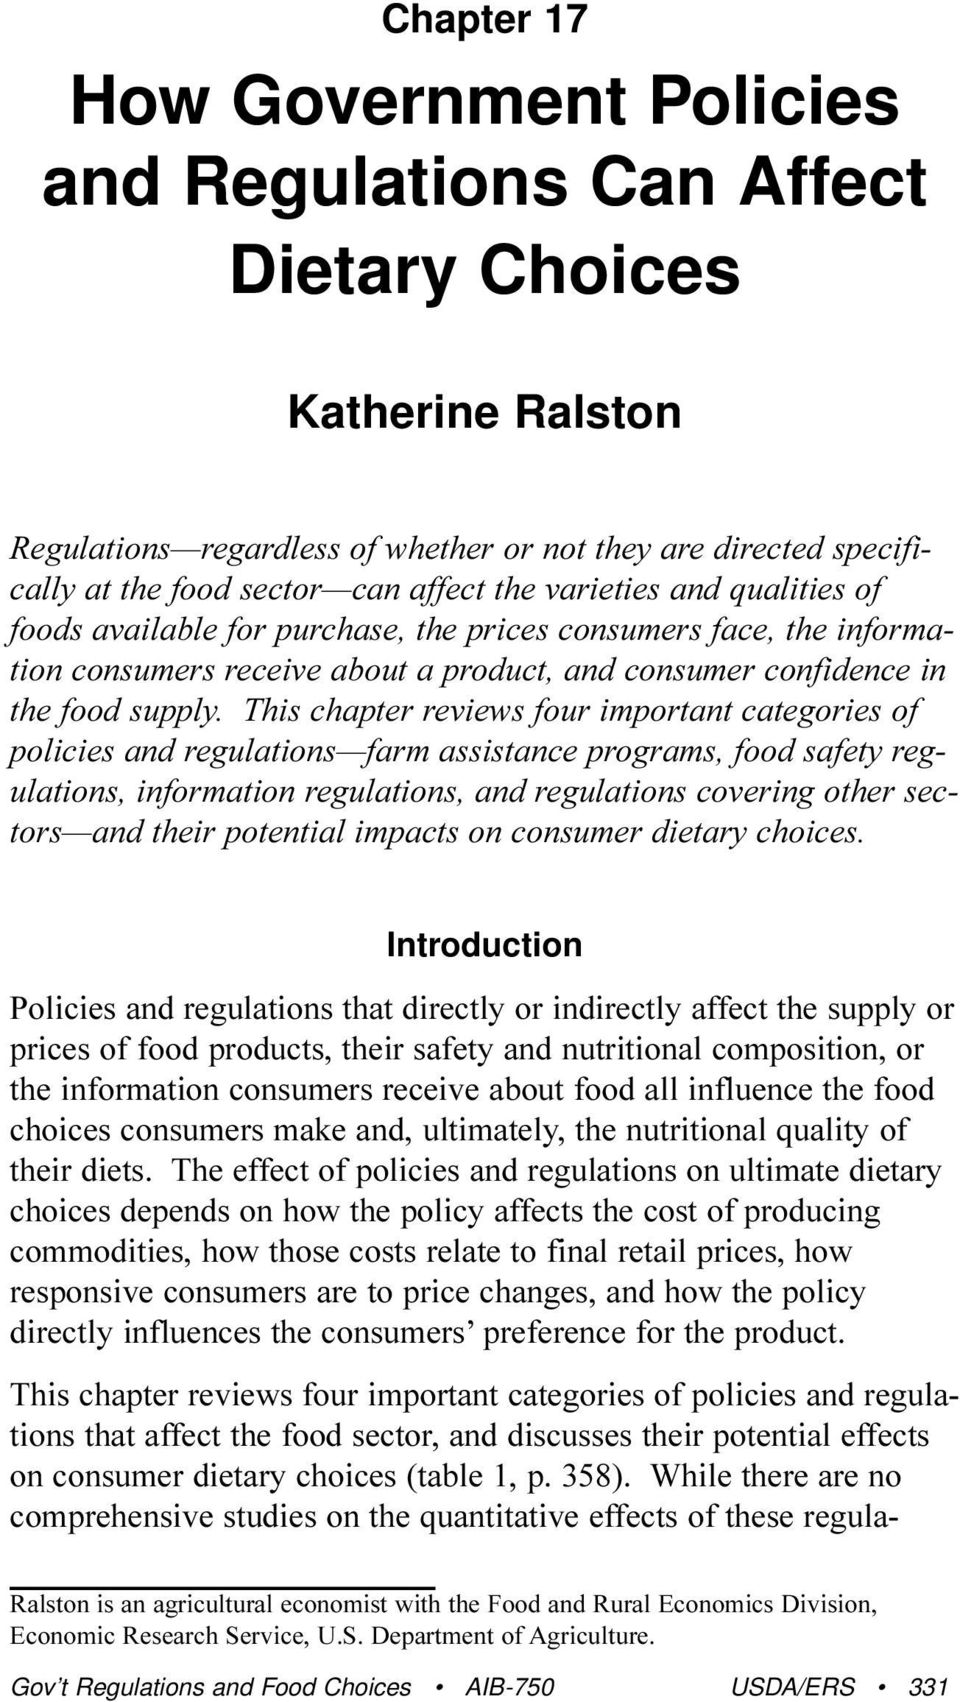 This chapter reviews four important categories of policies and regulations farm assistance programs, food safety regulations, information regulations, and regulations covering other sectors and their